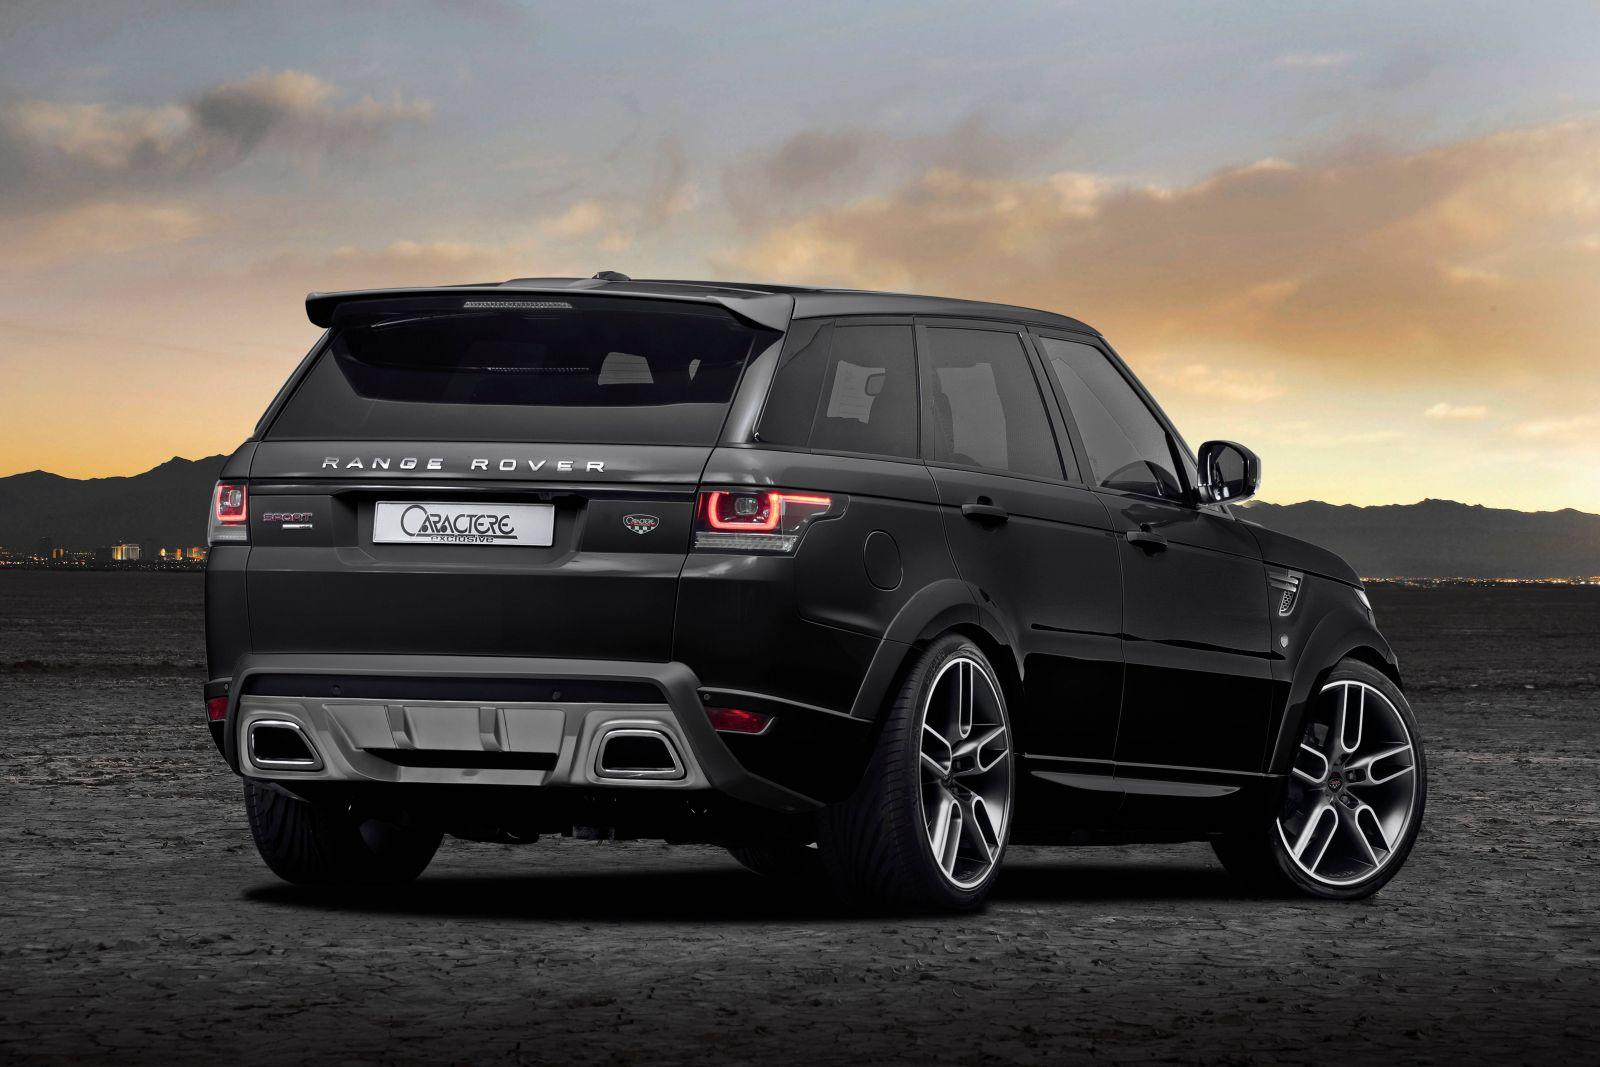 Land Rover Discovery Sport >> Caractere Exclusive tweaks Range Rover Sport - ForceGT.com